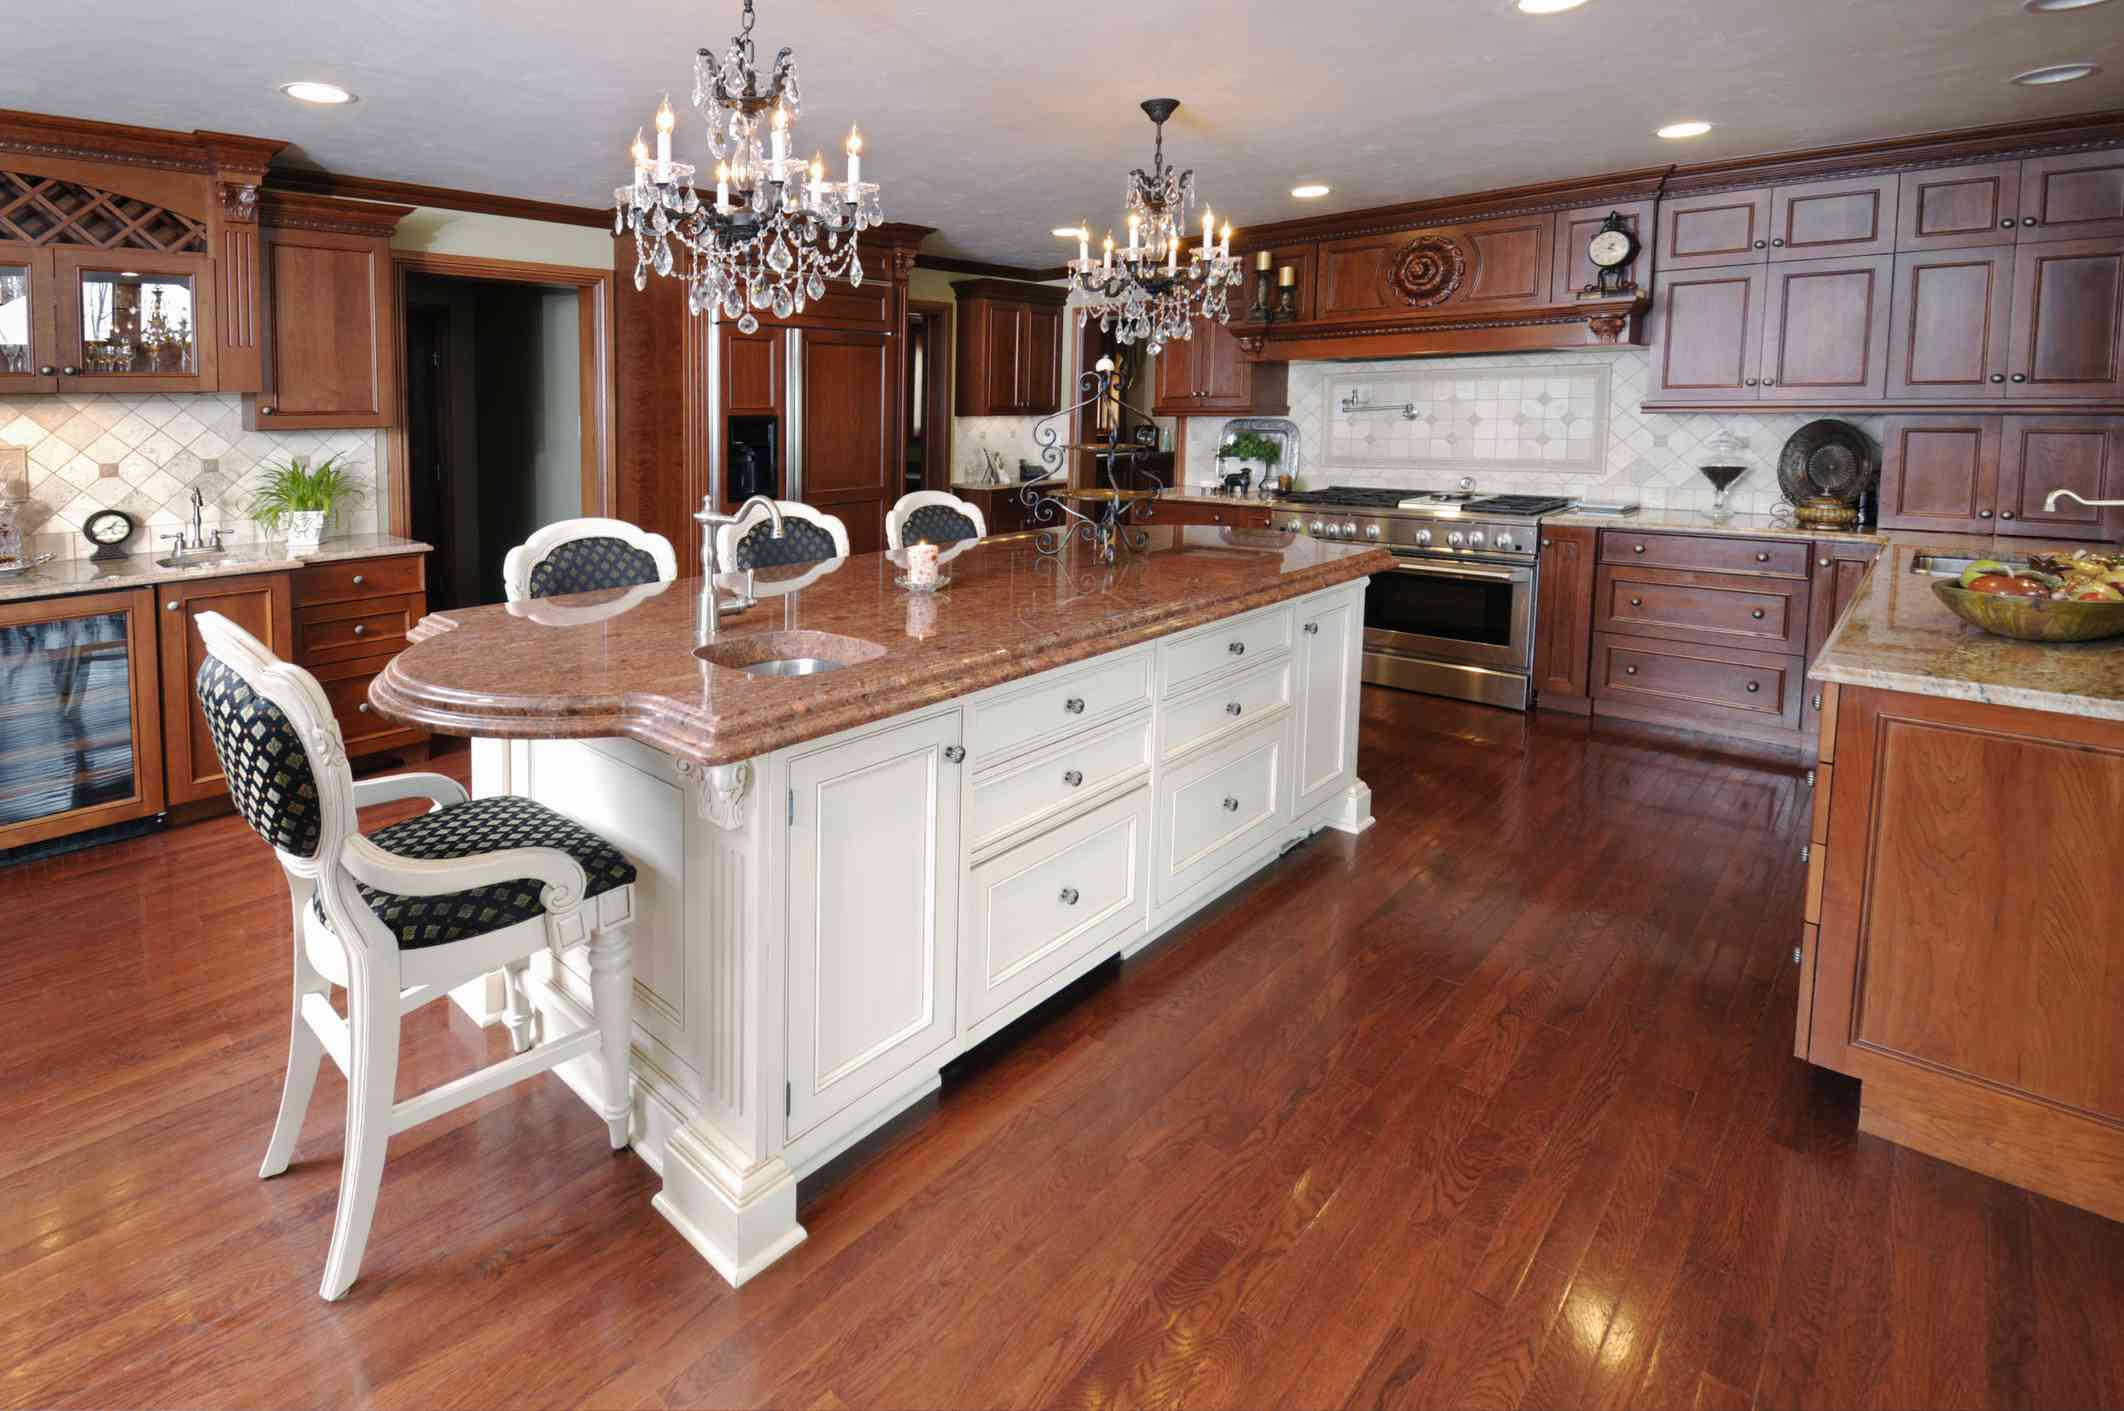 Traditional wood kitchen cabinets.